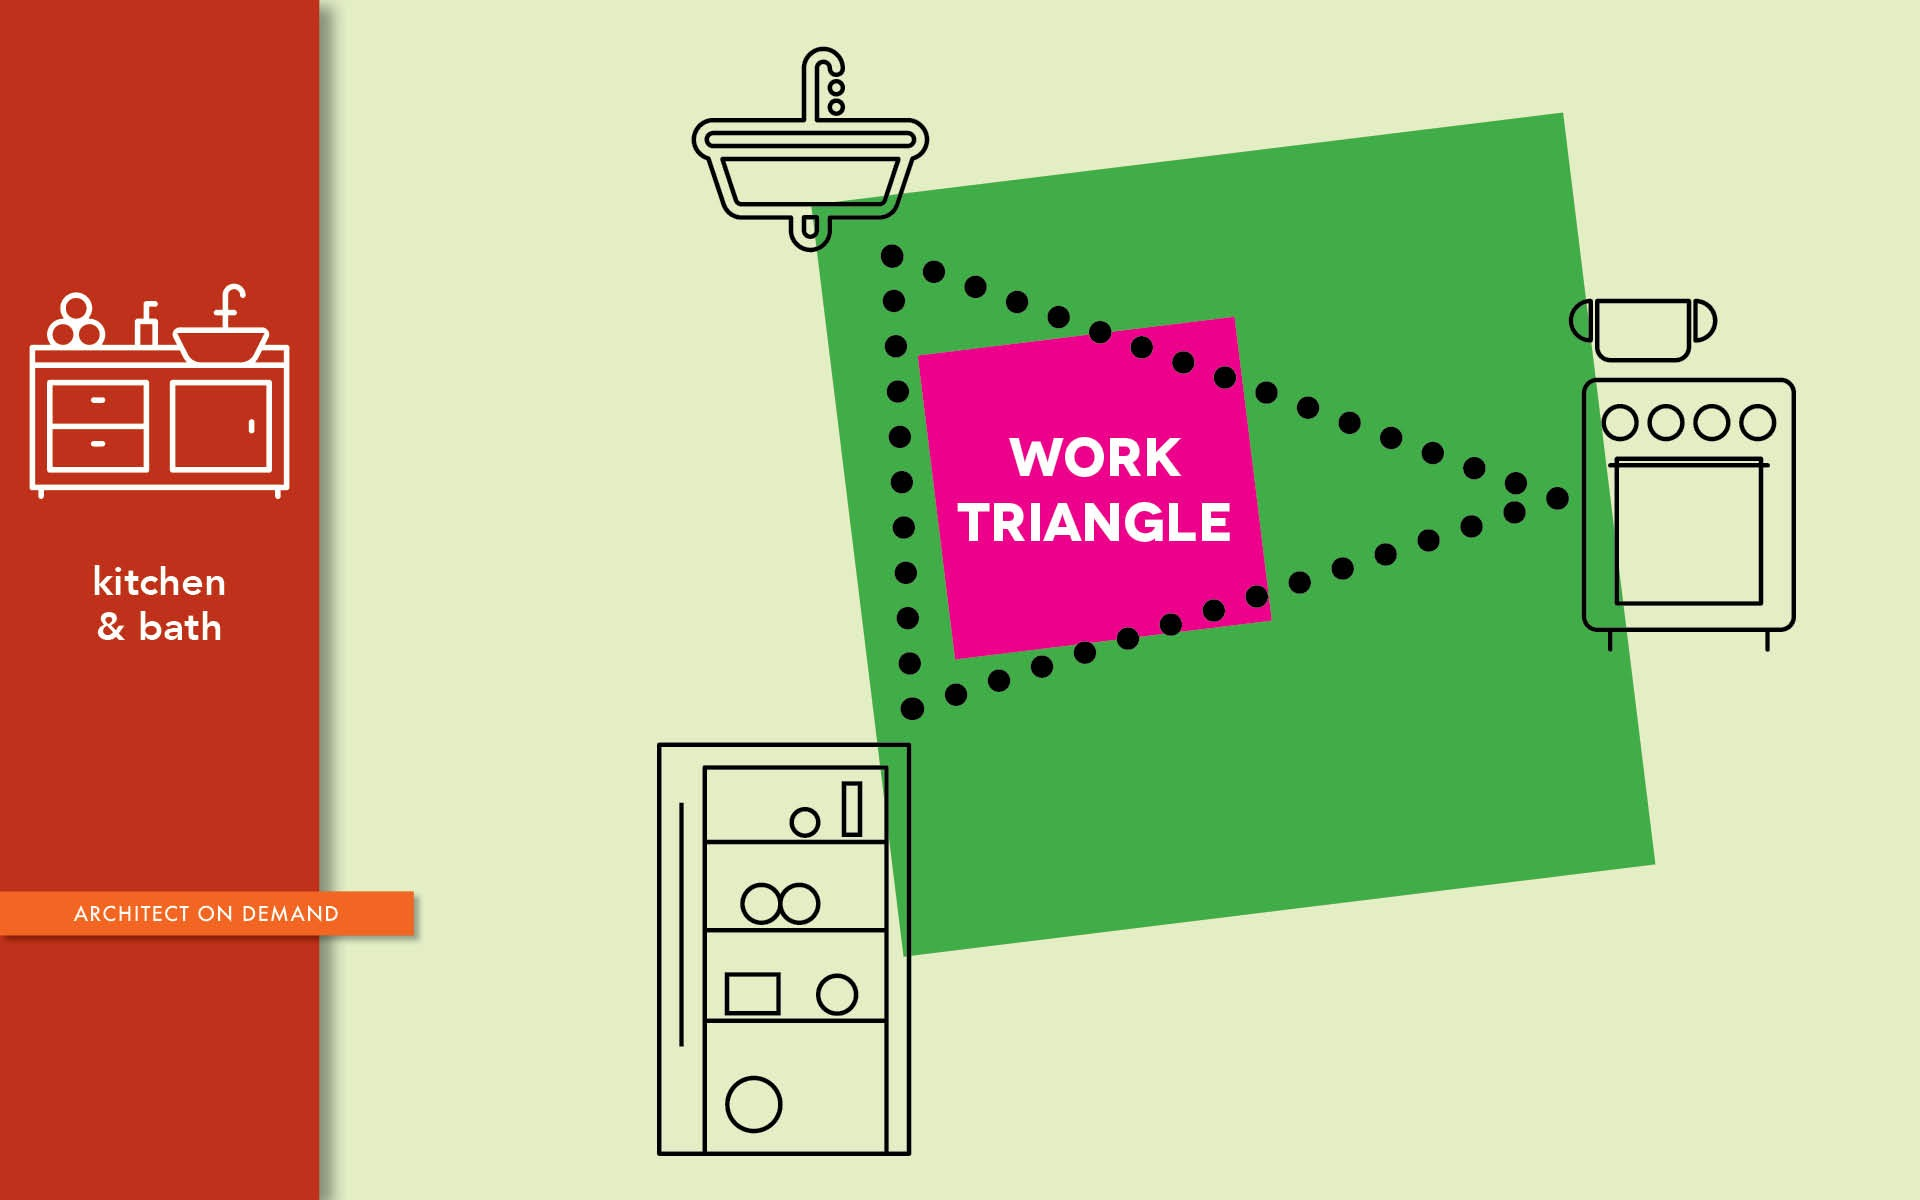 kitchen, work triangle, architect on demand, advice without strings